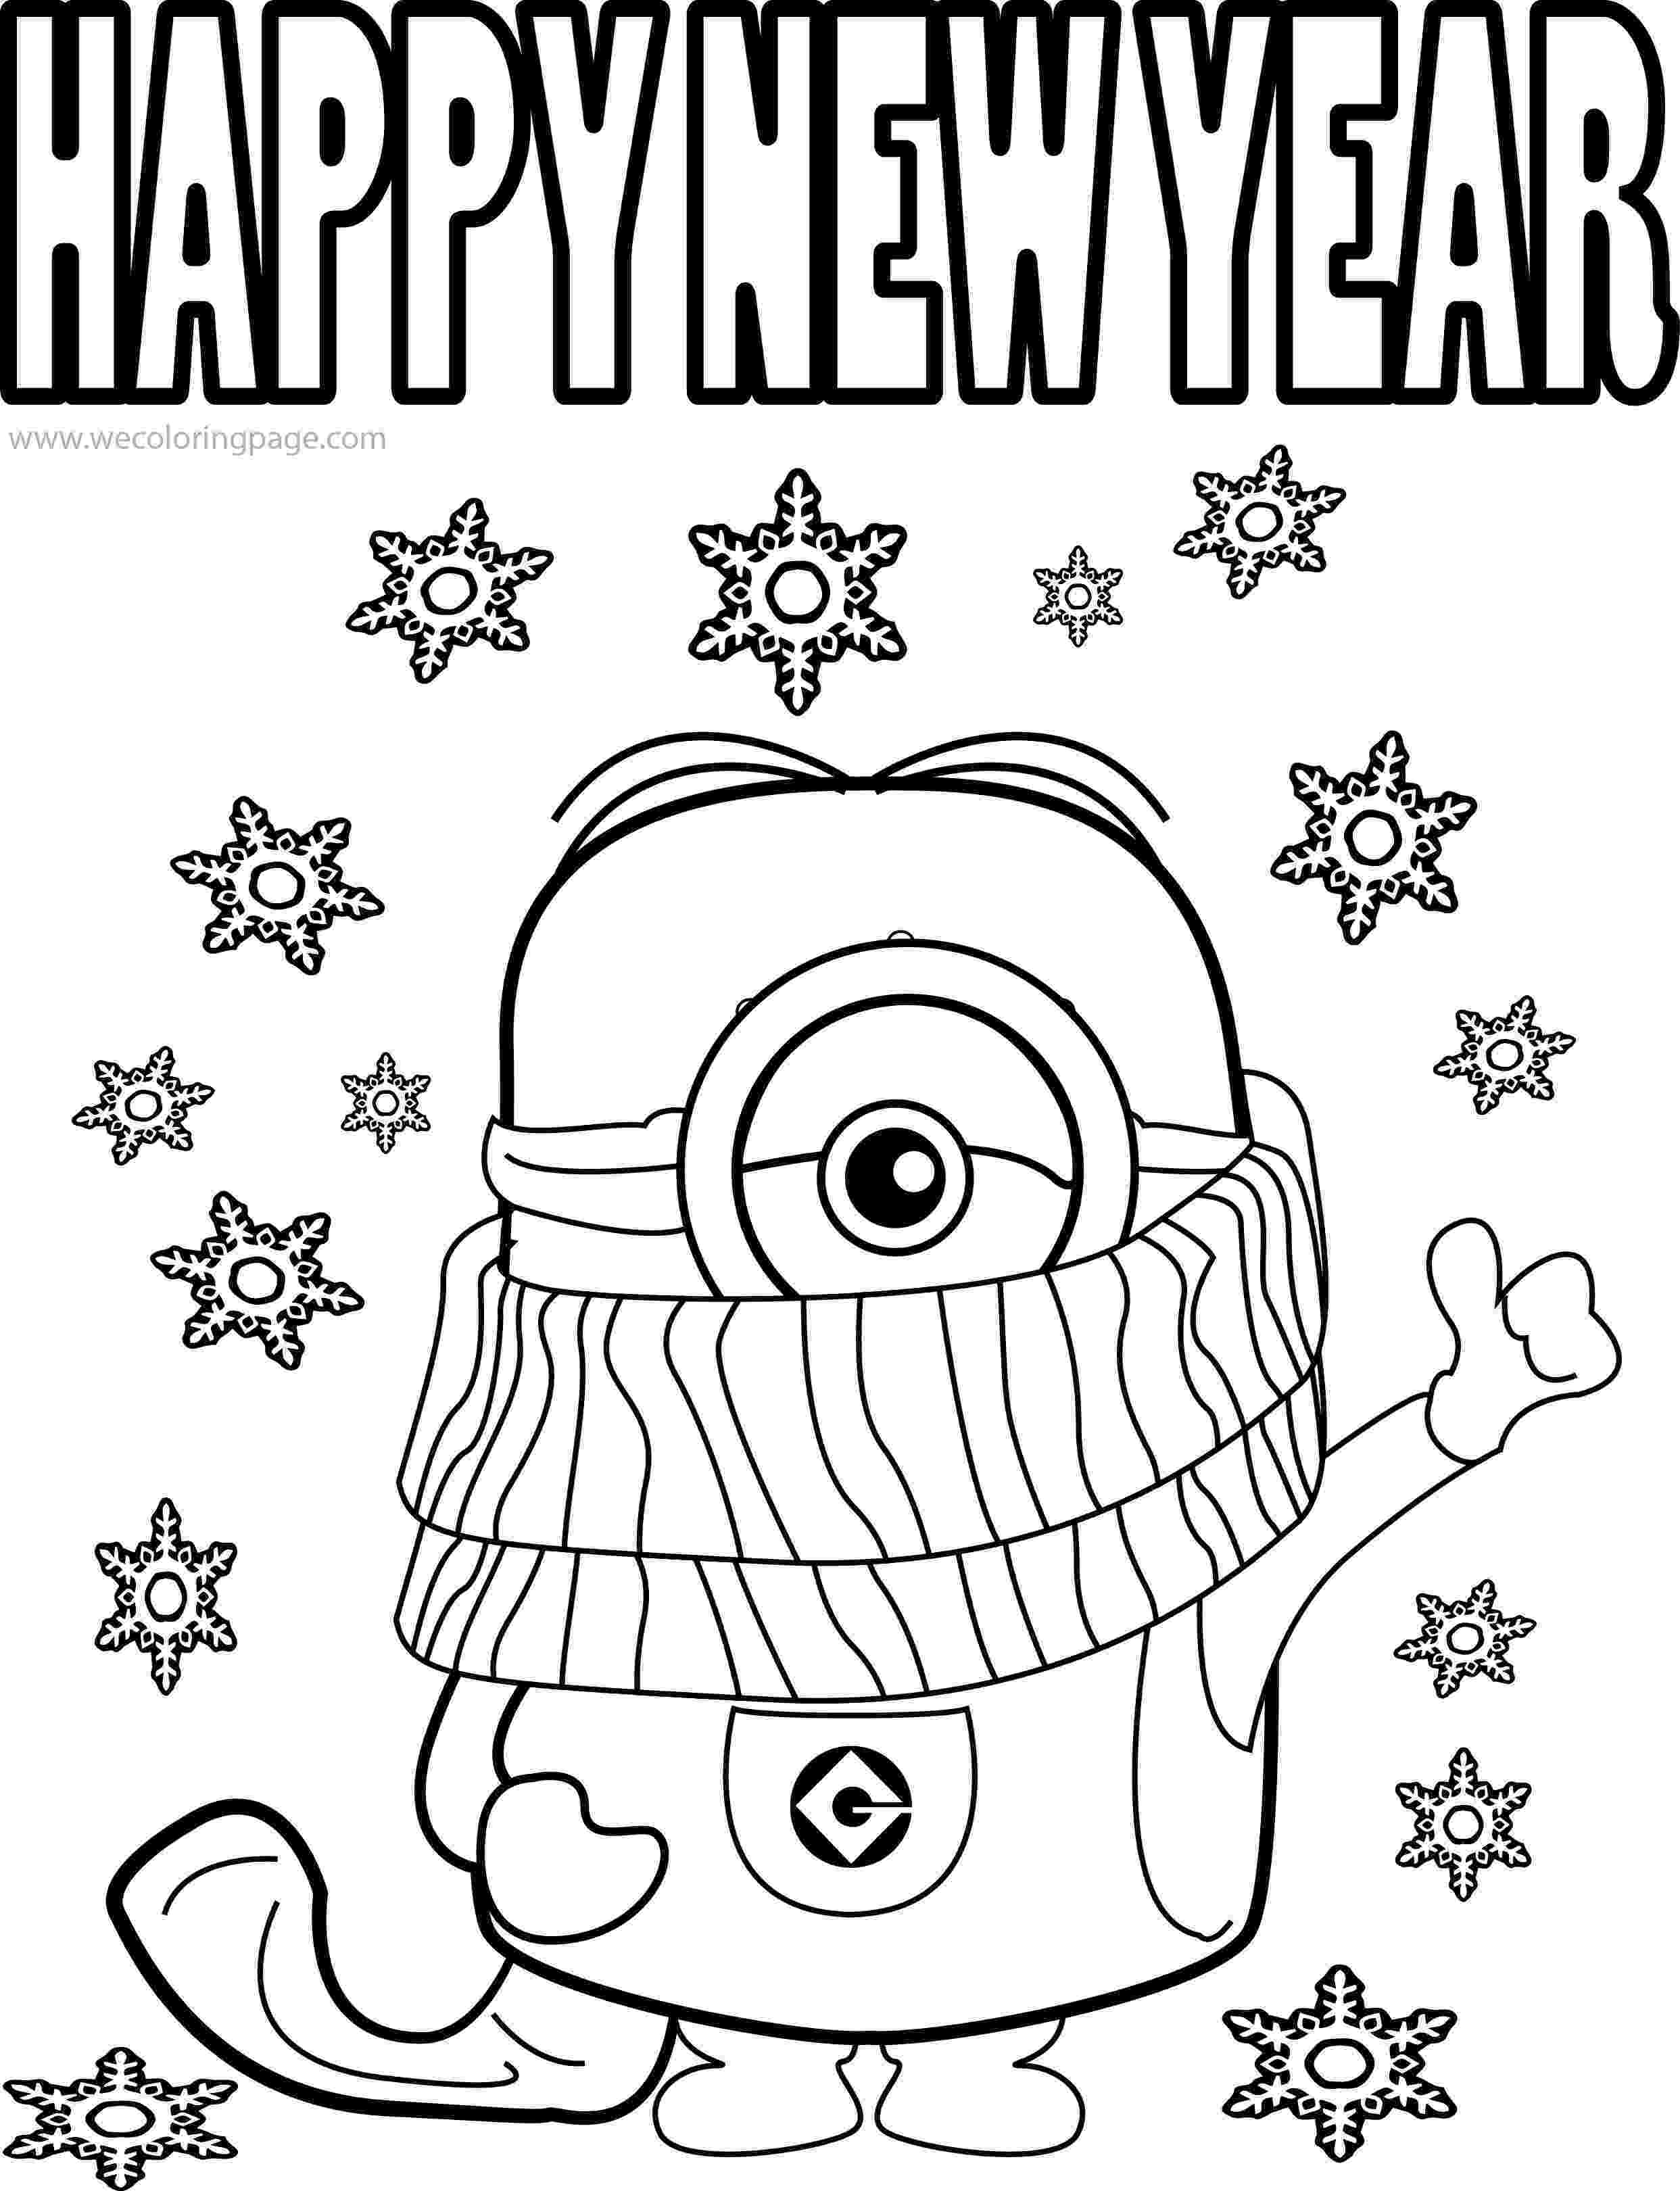 happy new year coloring pages best funny minions quotes and picture cold weather happy pages coloring new year happy